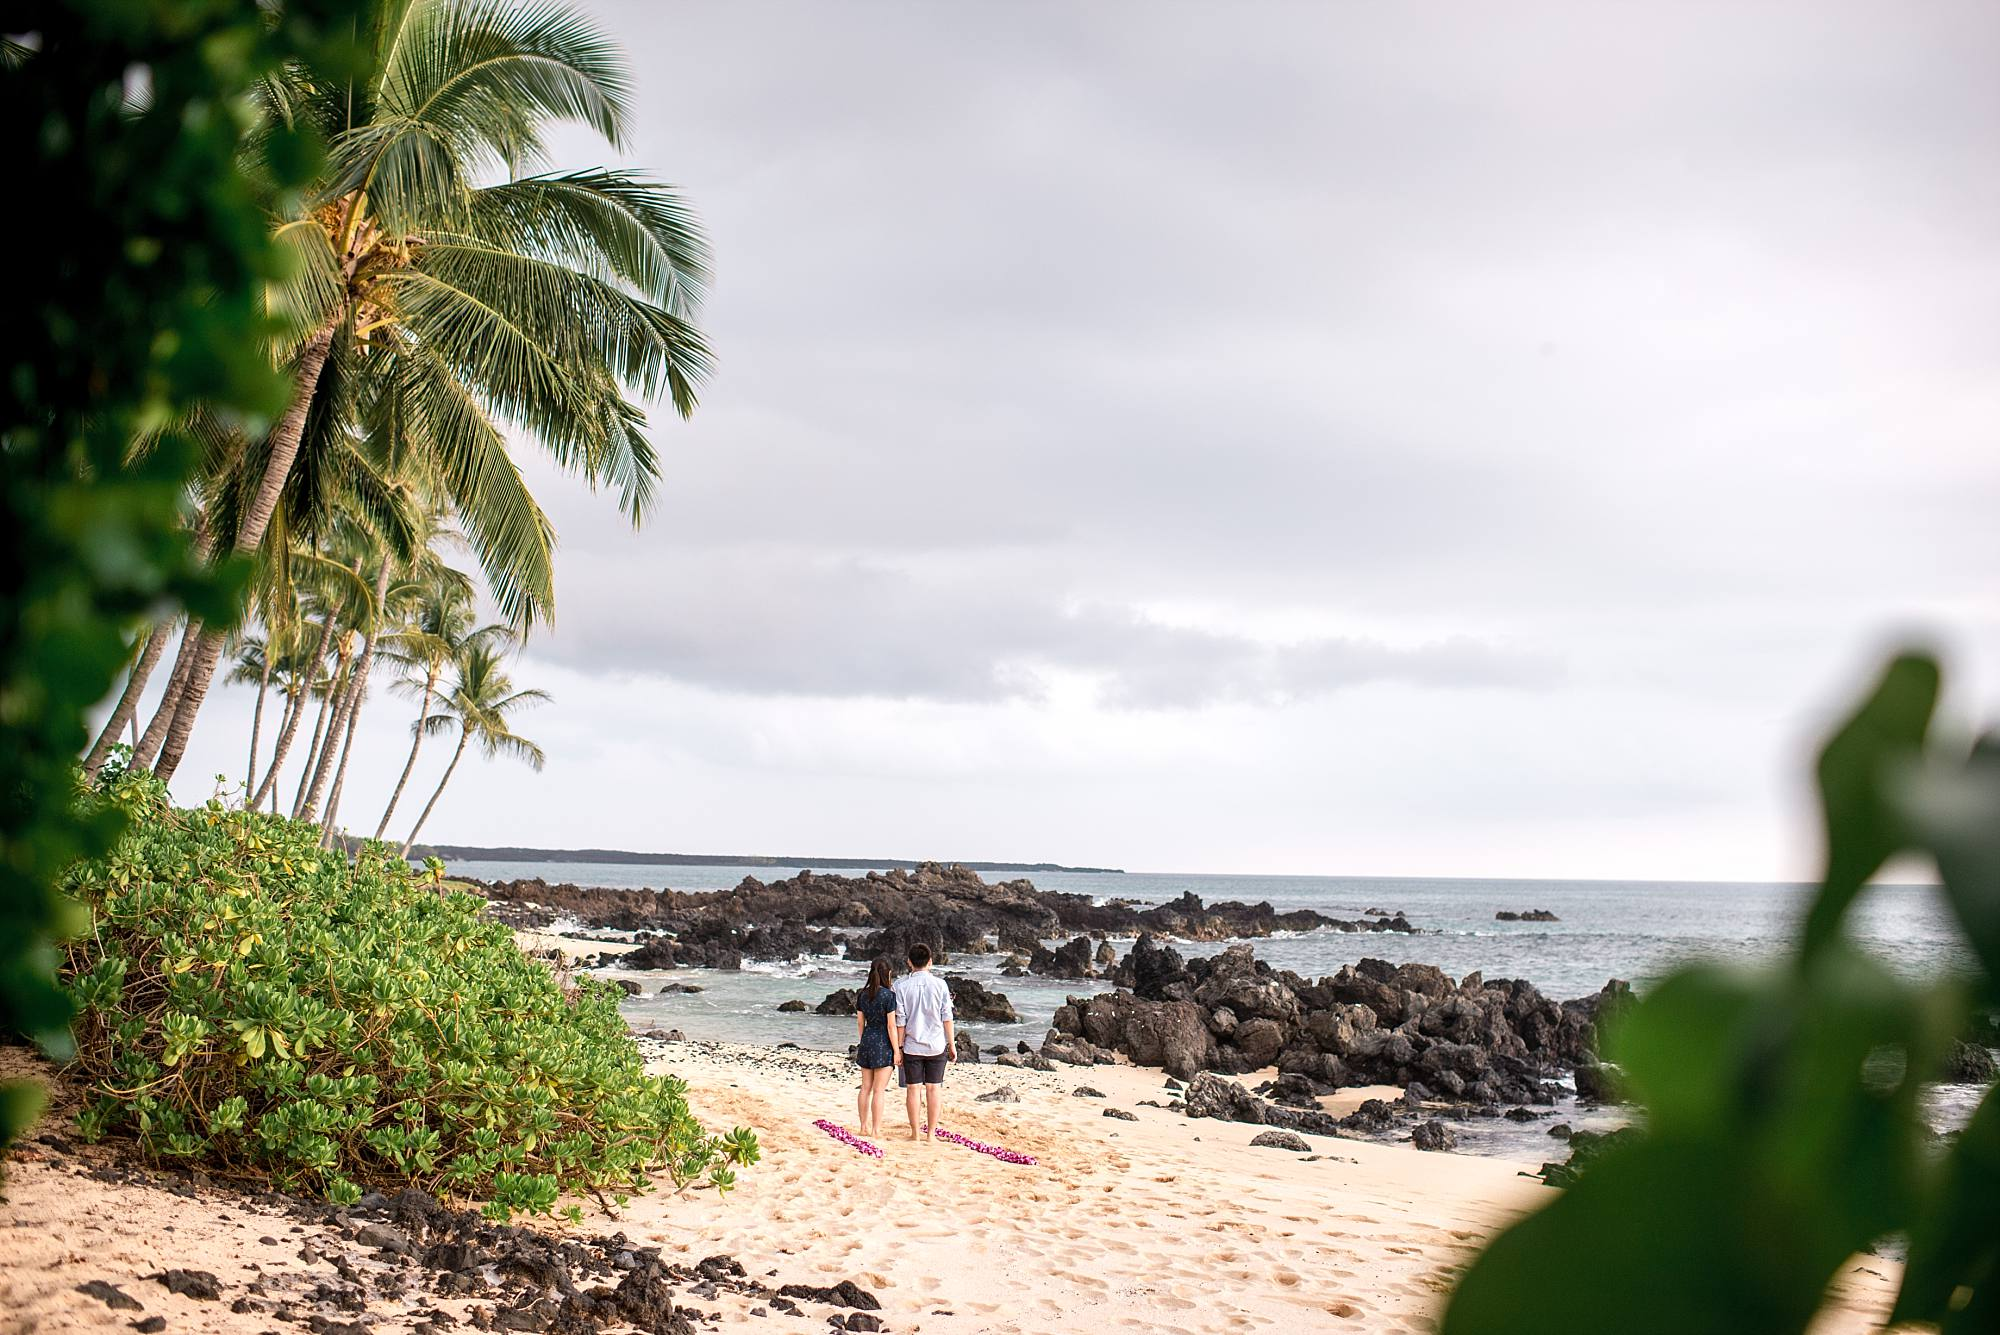 South Maui beach with couple holding hands being serenaded by Ukulele player